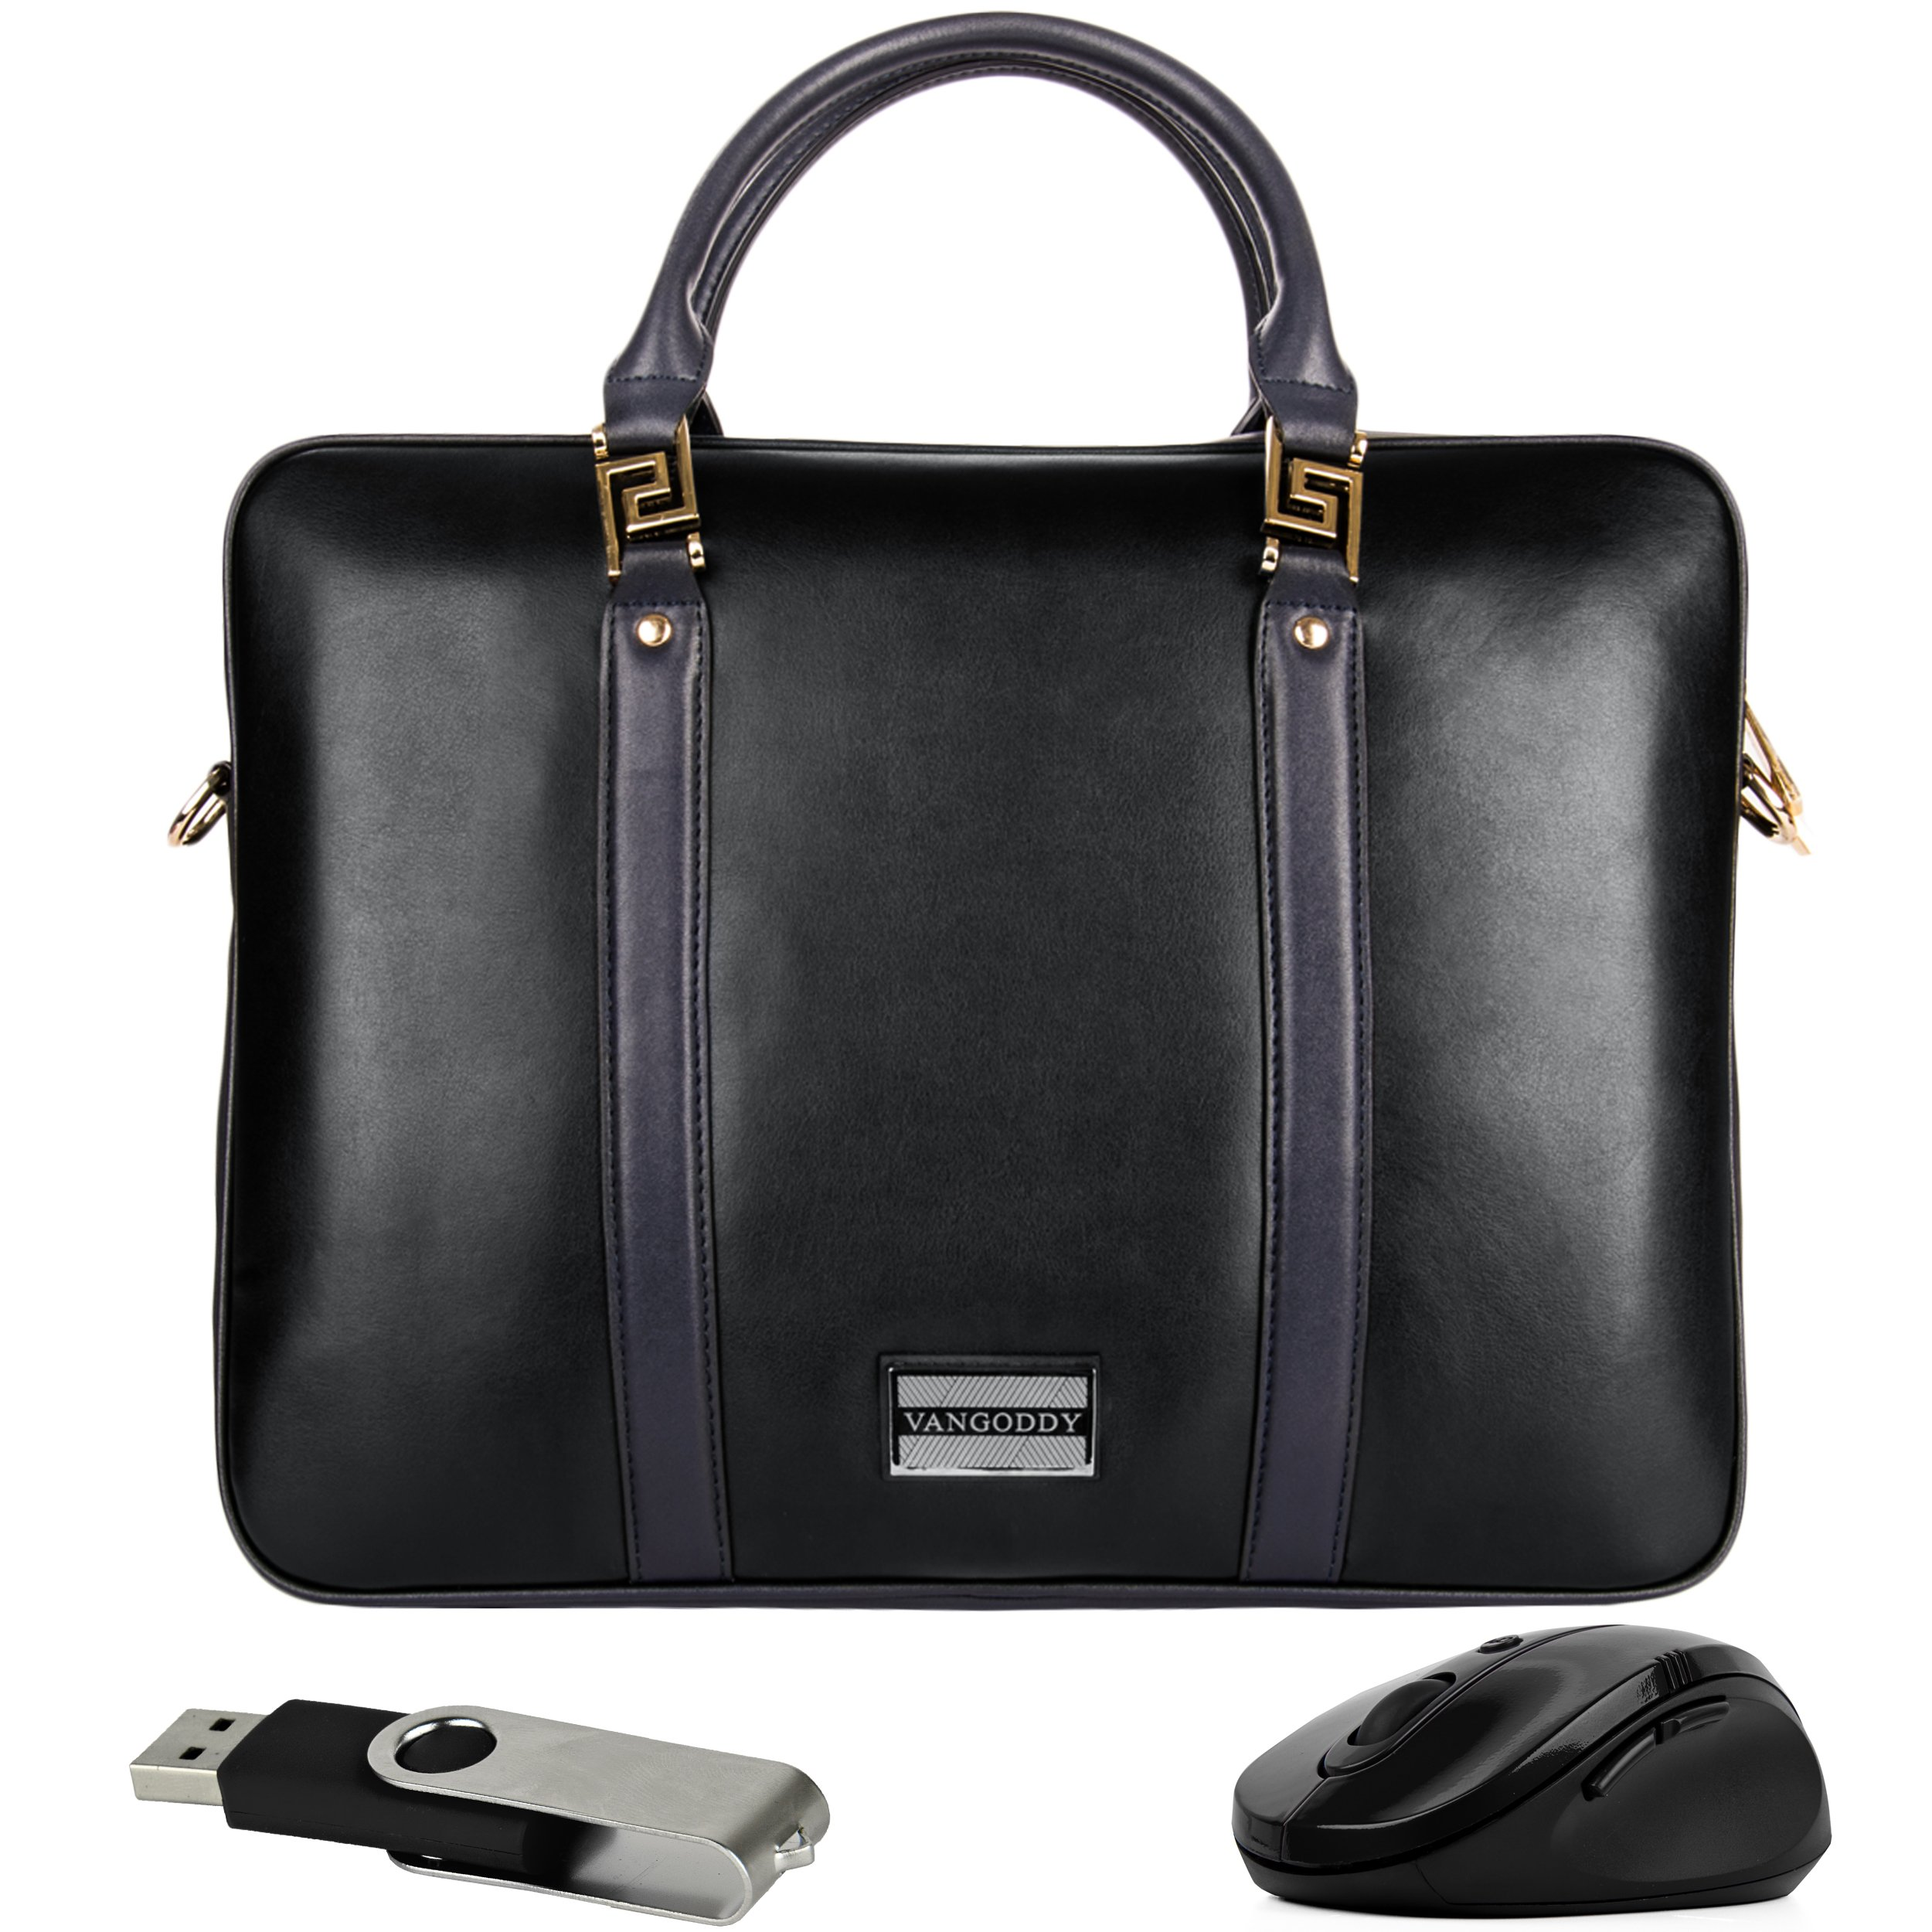 VanGoddy Meka Authentic Leather Laptop Carrier with Mouse and Flash Drive for HP EliteBook / ProBook / Spectre / Pavilion 10''-12inch